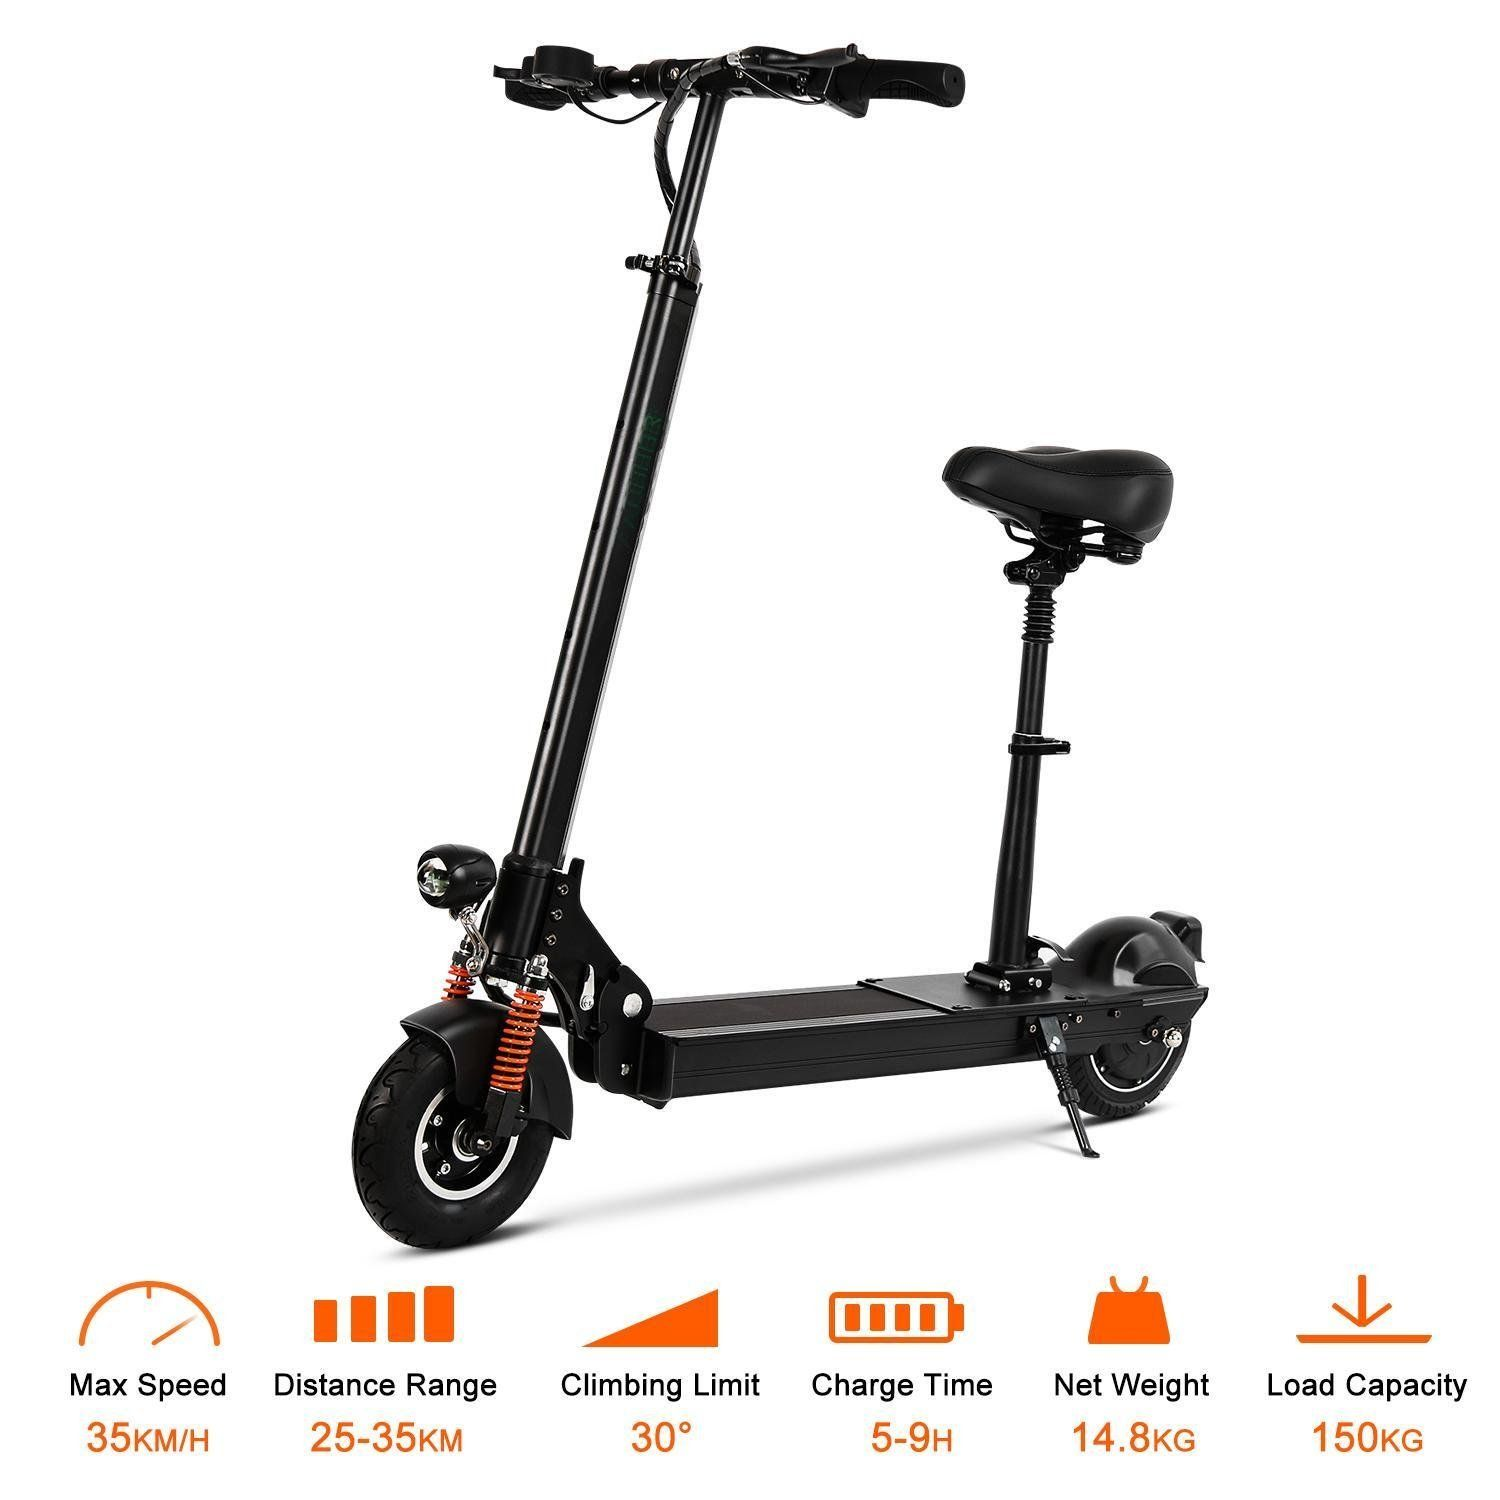 Scooters Cleantechnica S Products Guide Folding Electric